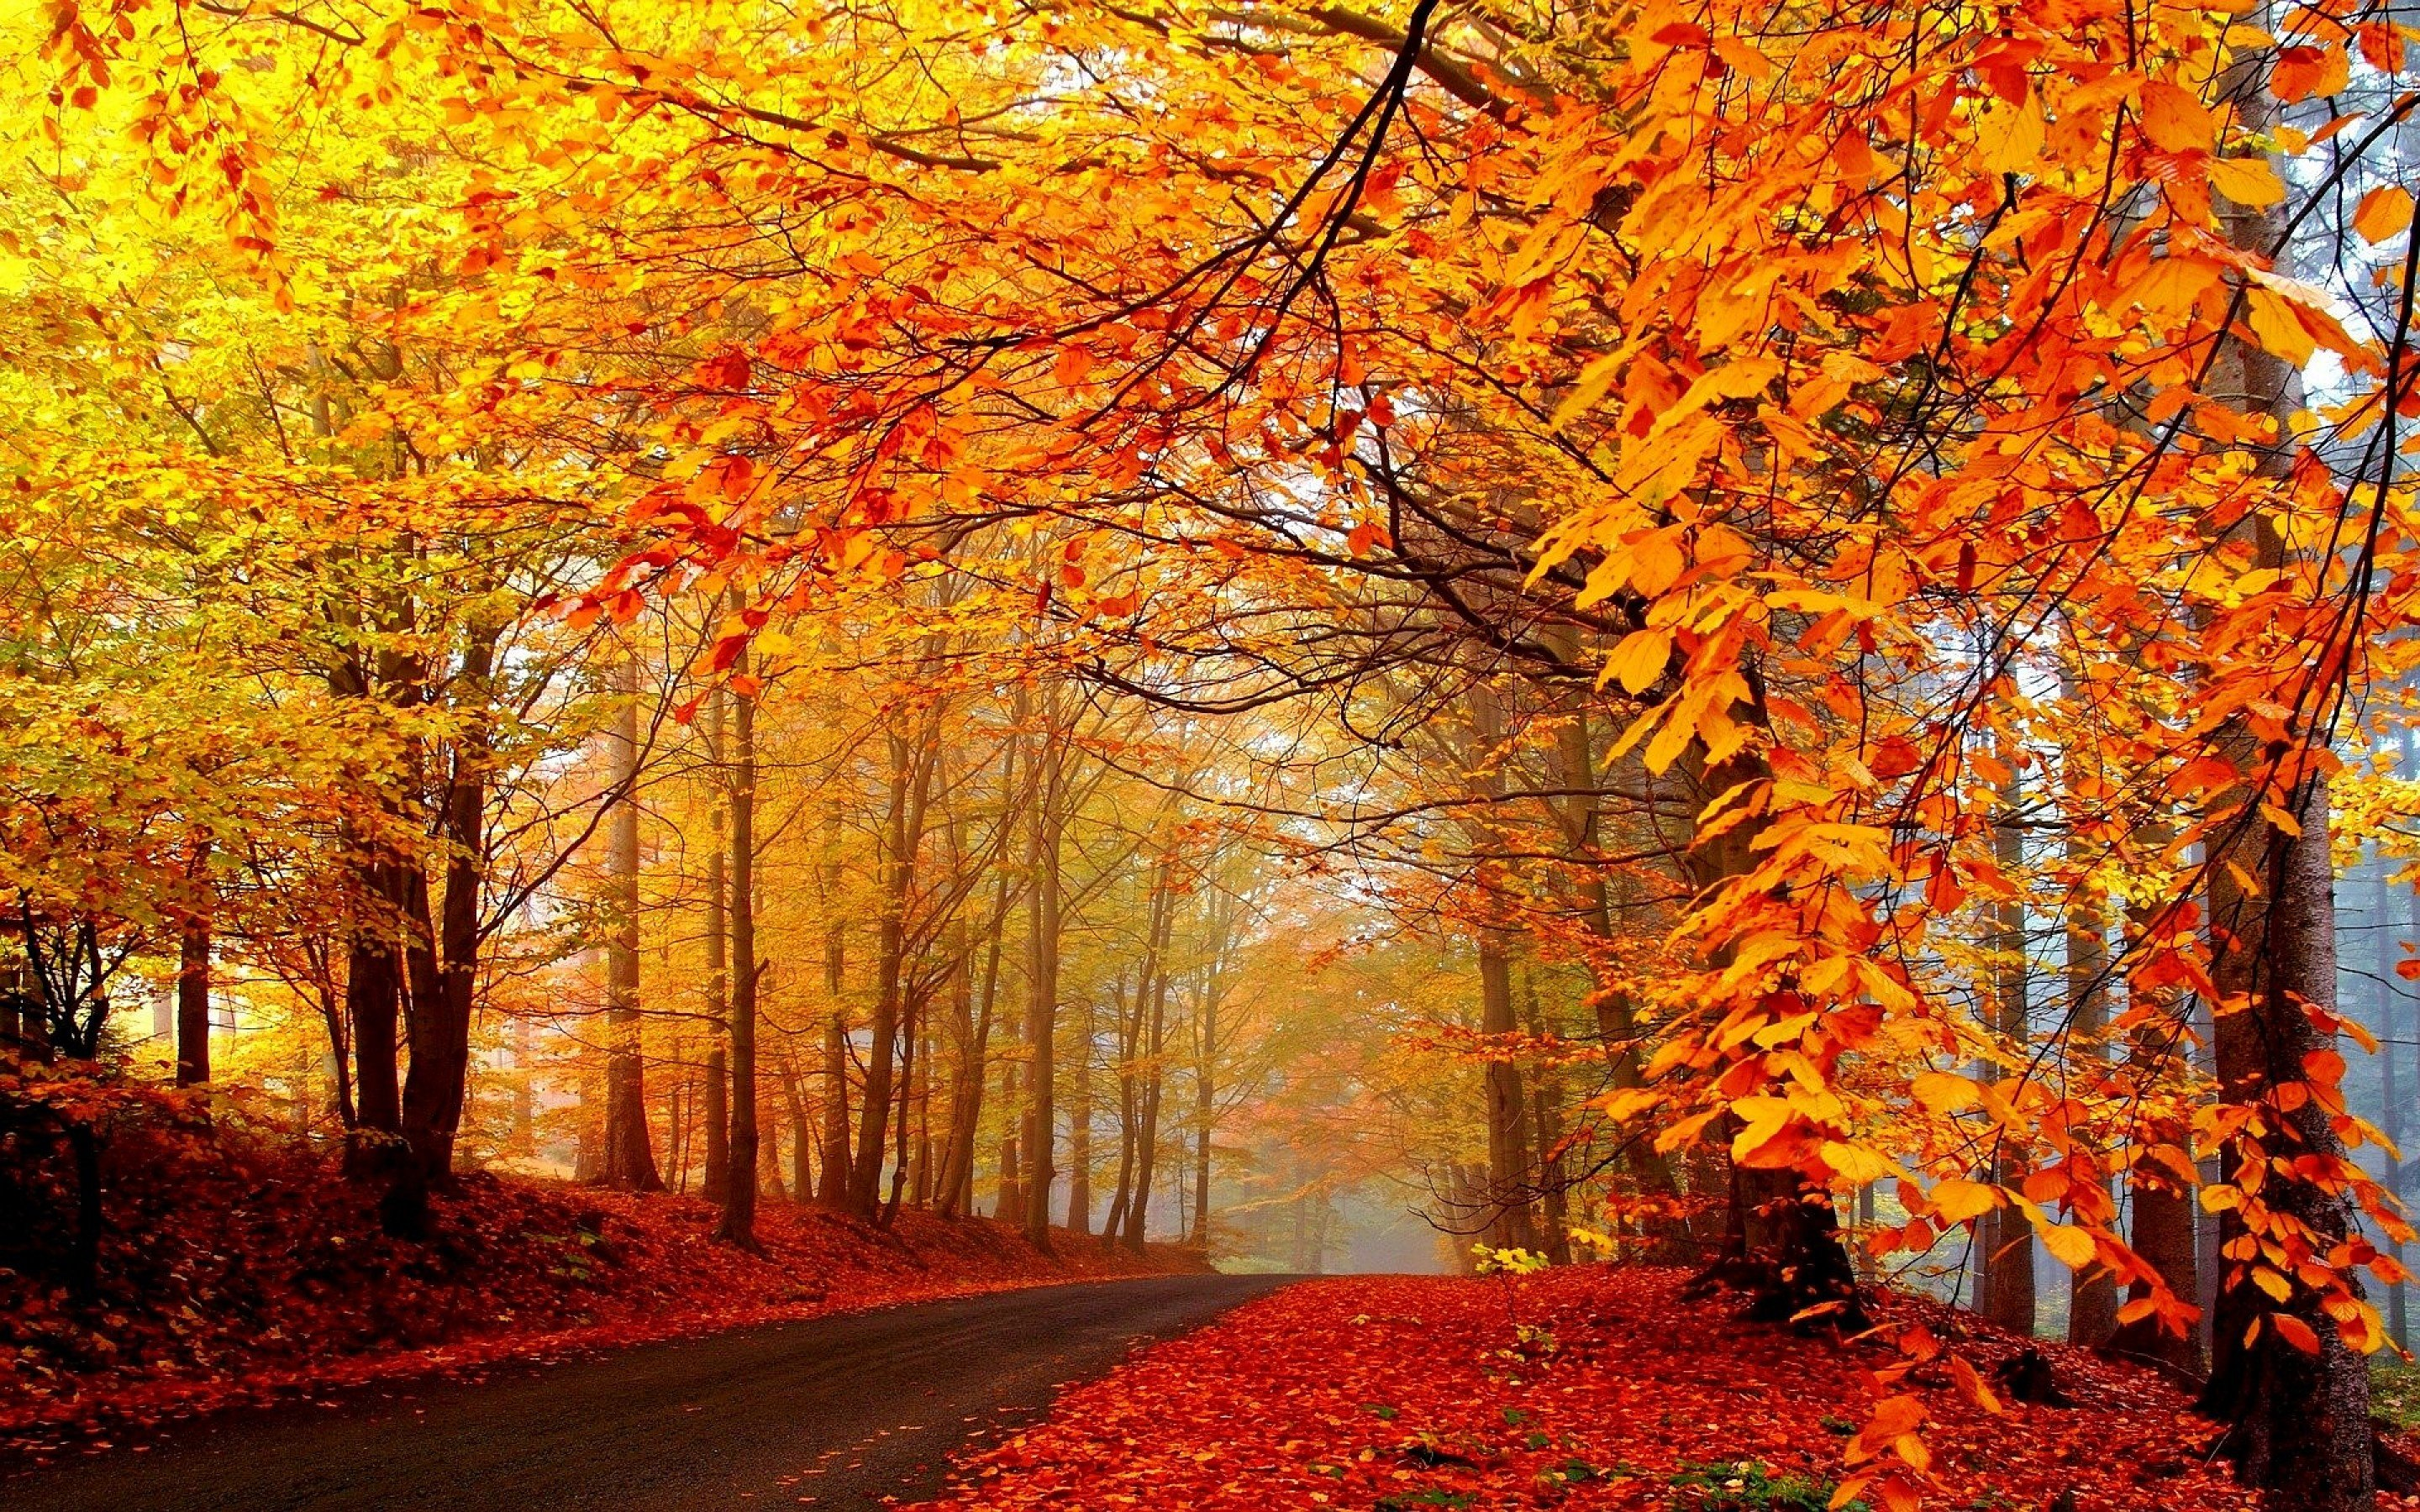 Fall Trees Wallpaper Autumn Fall Landscape Nature Tree Forest Leaf Leaves Road